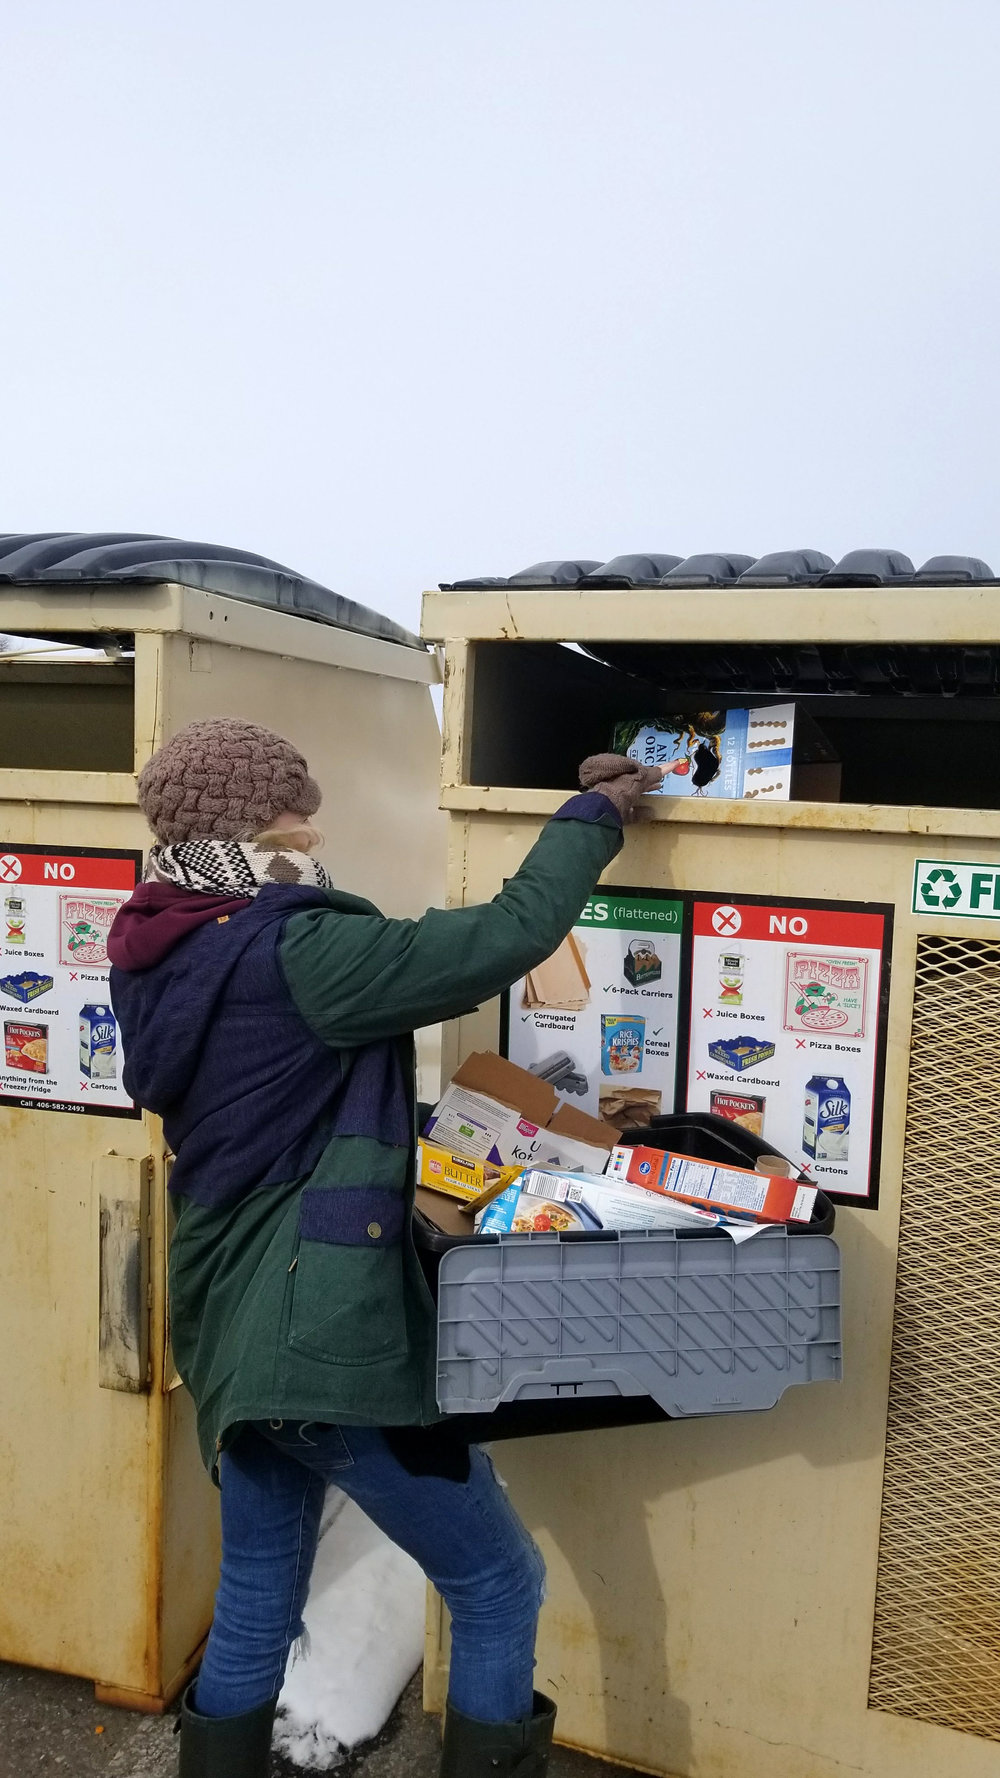 I try to do all that I can to help save the planet. Here I am recycling. We save everything we can for recycling and we try to use reuse able products whenever possible. I HATE plastic and wish it would be banned off this planet.